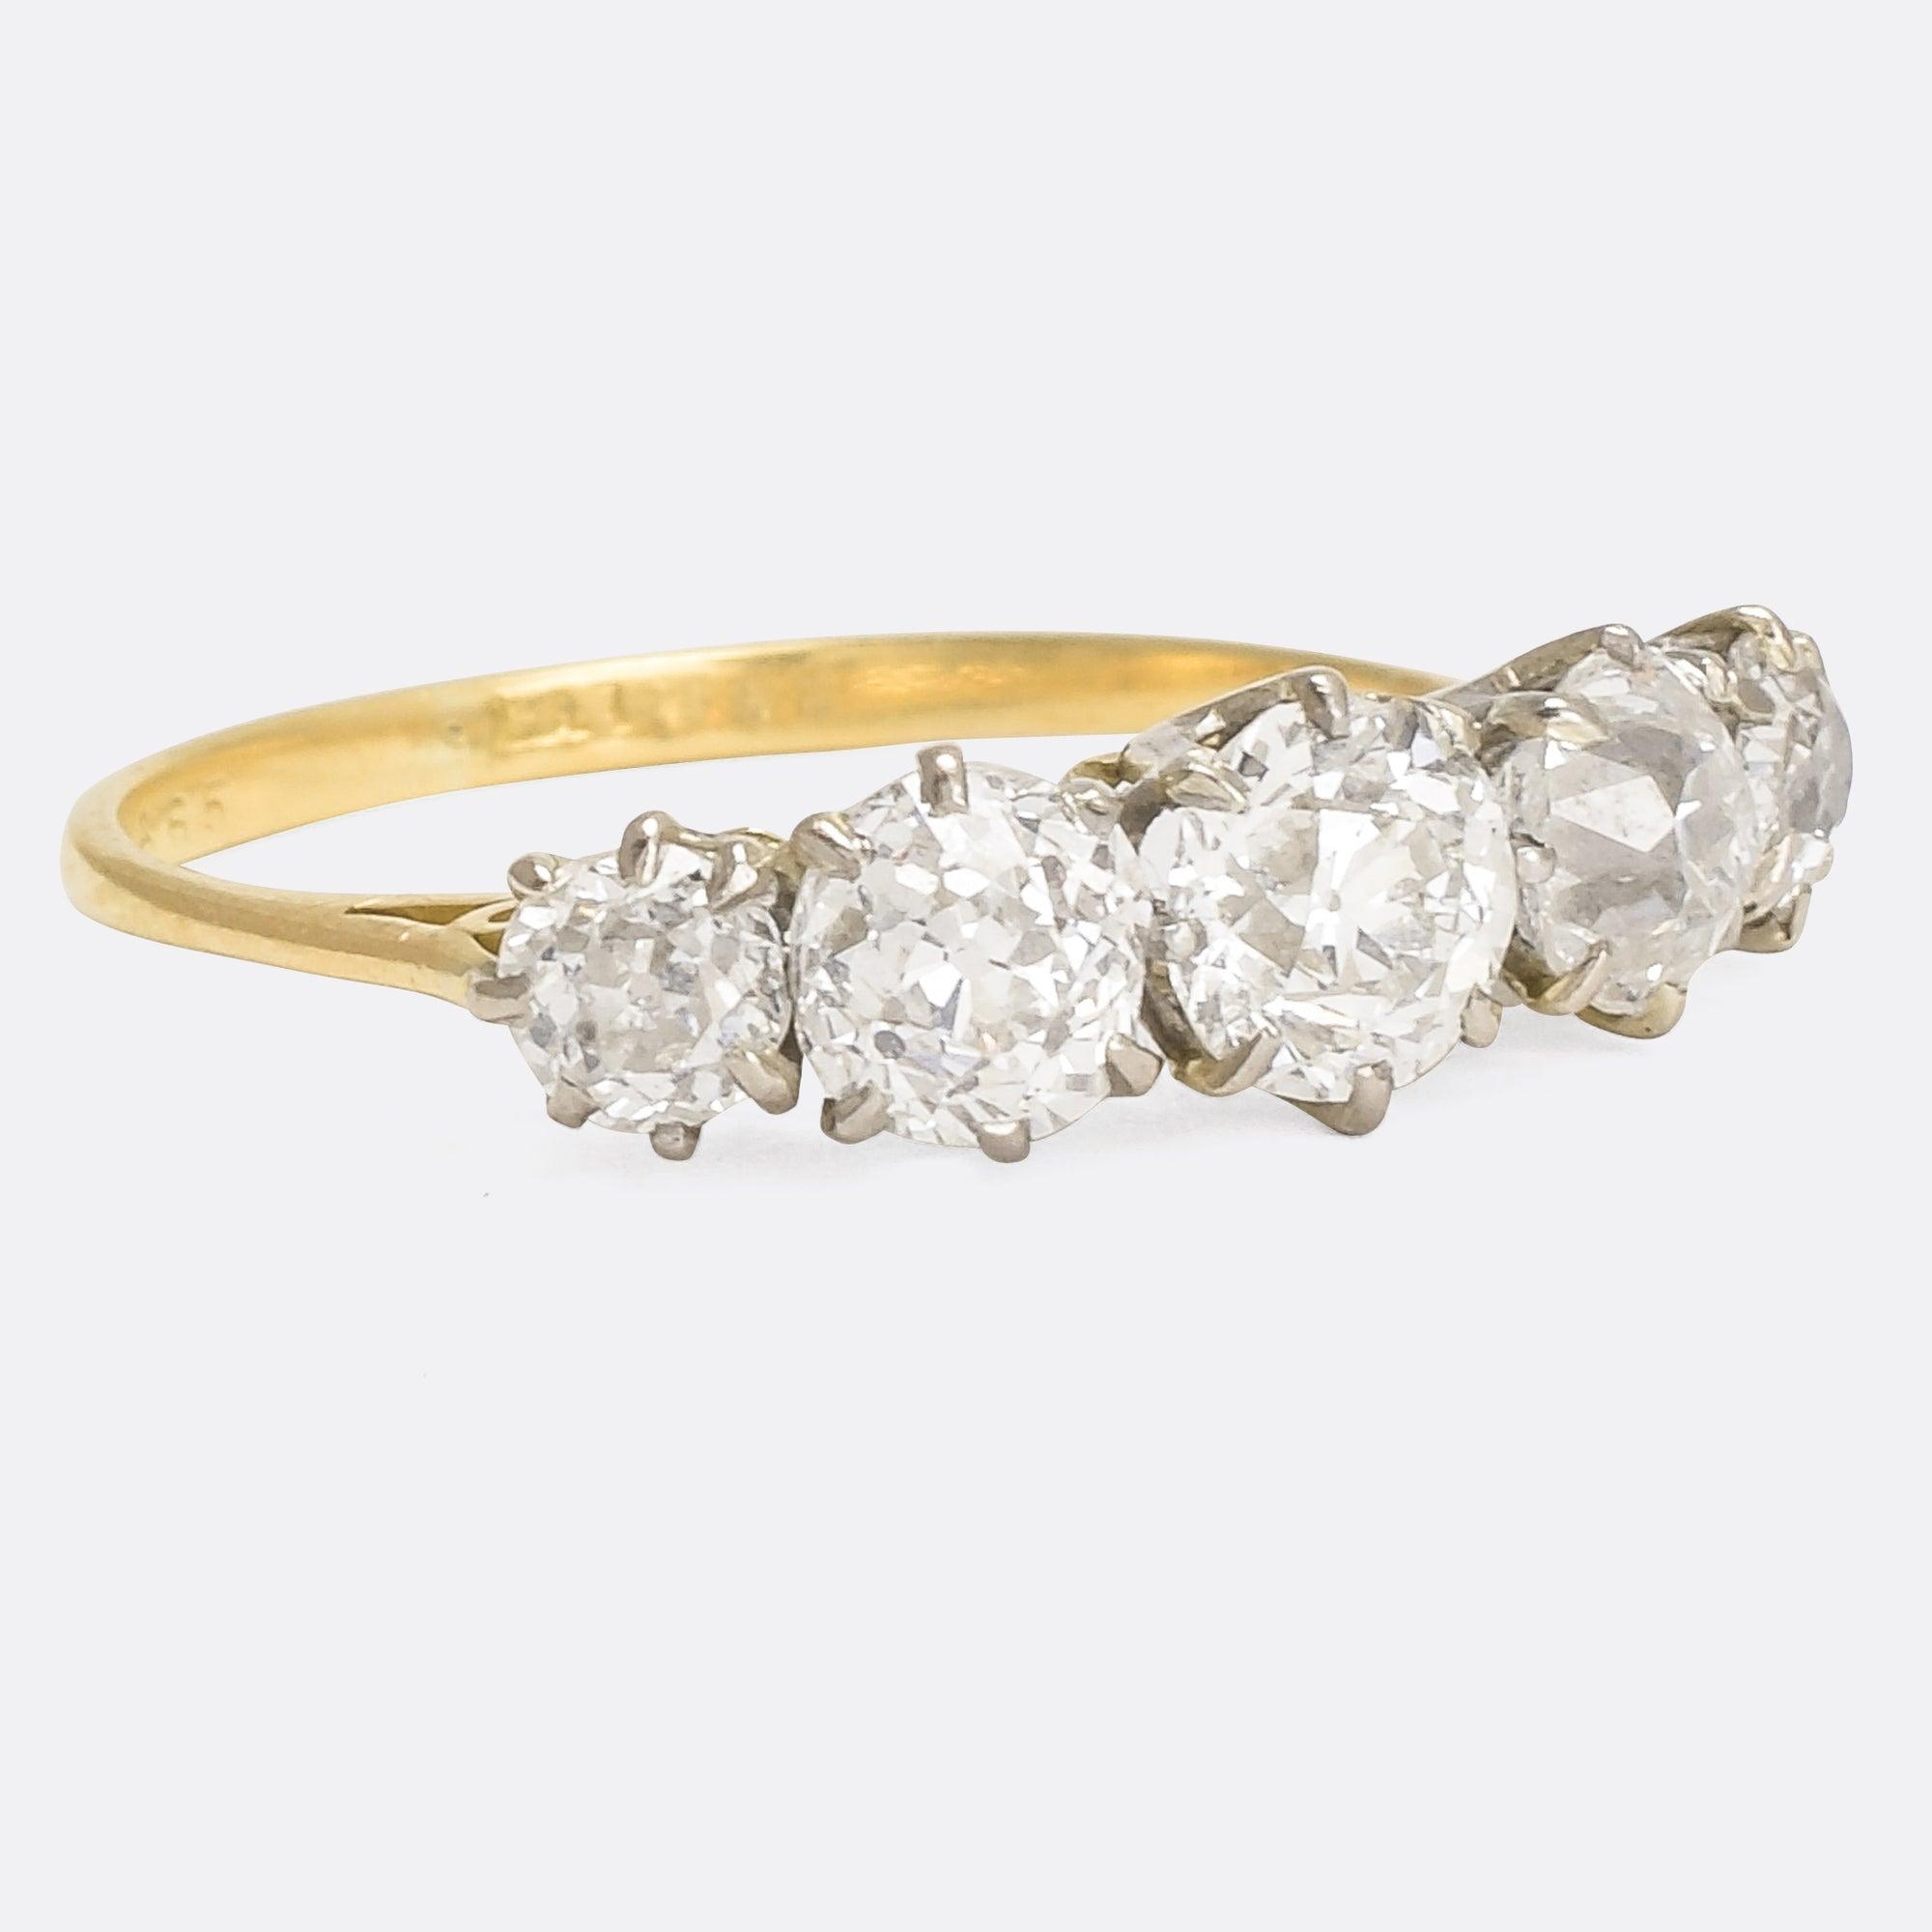 ef8ab8d72e5f29 Edwardian 1.75ct Old Cut Diamond 5-Stone Ring – Butter Lane Antiques